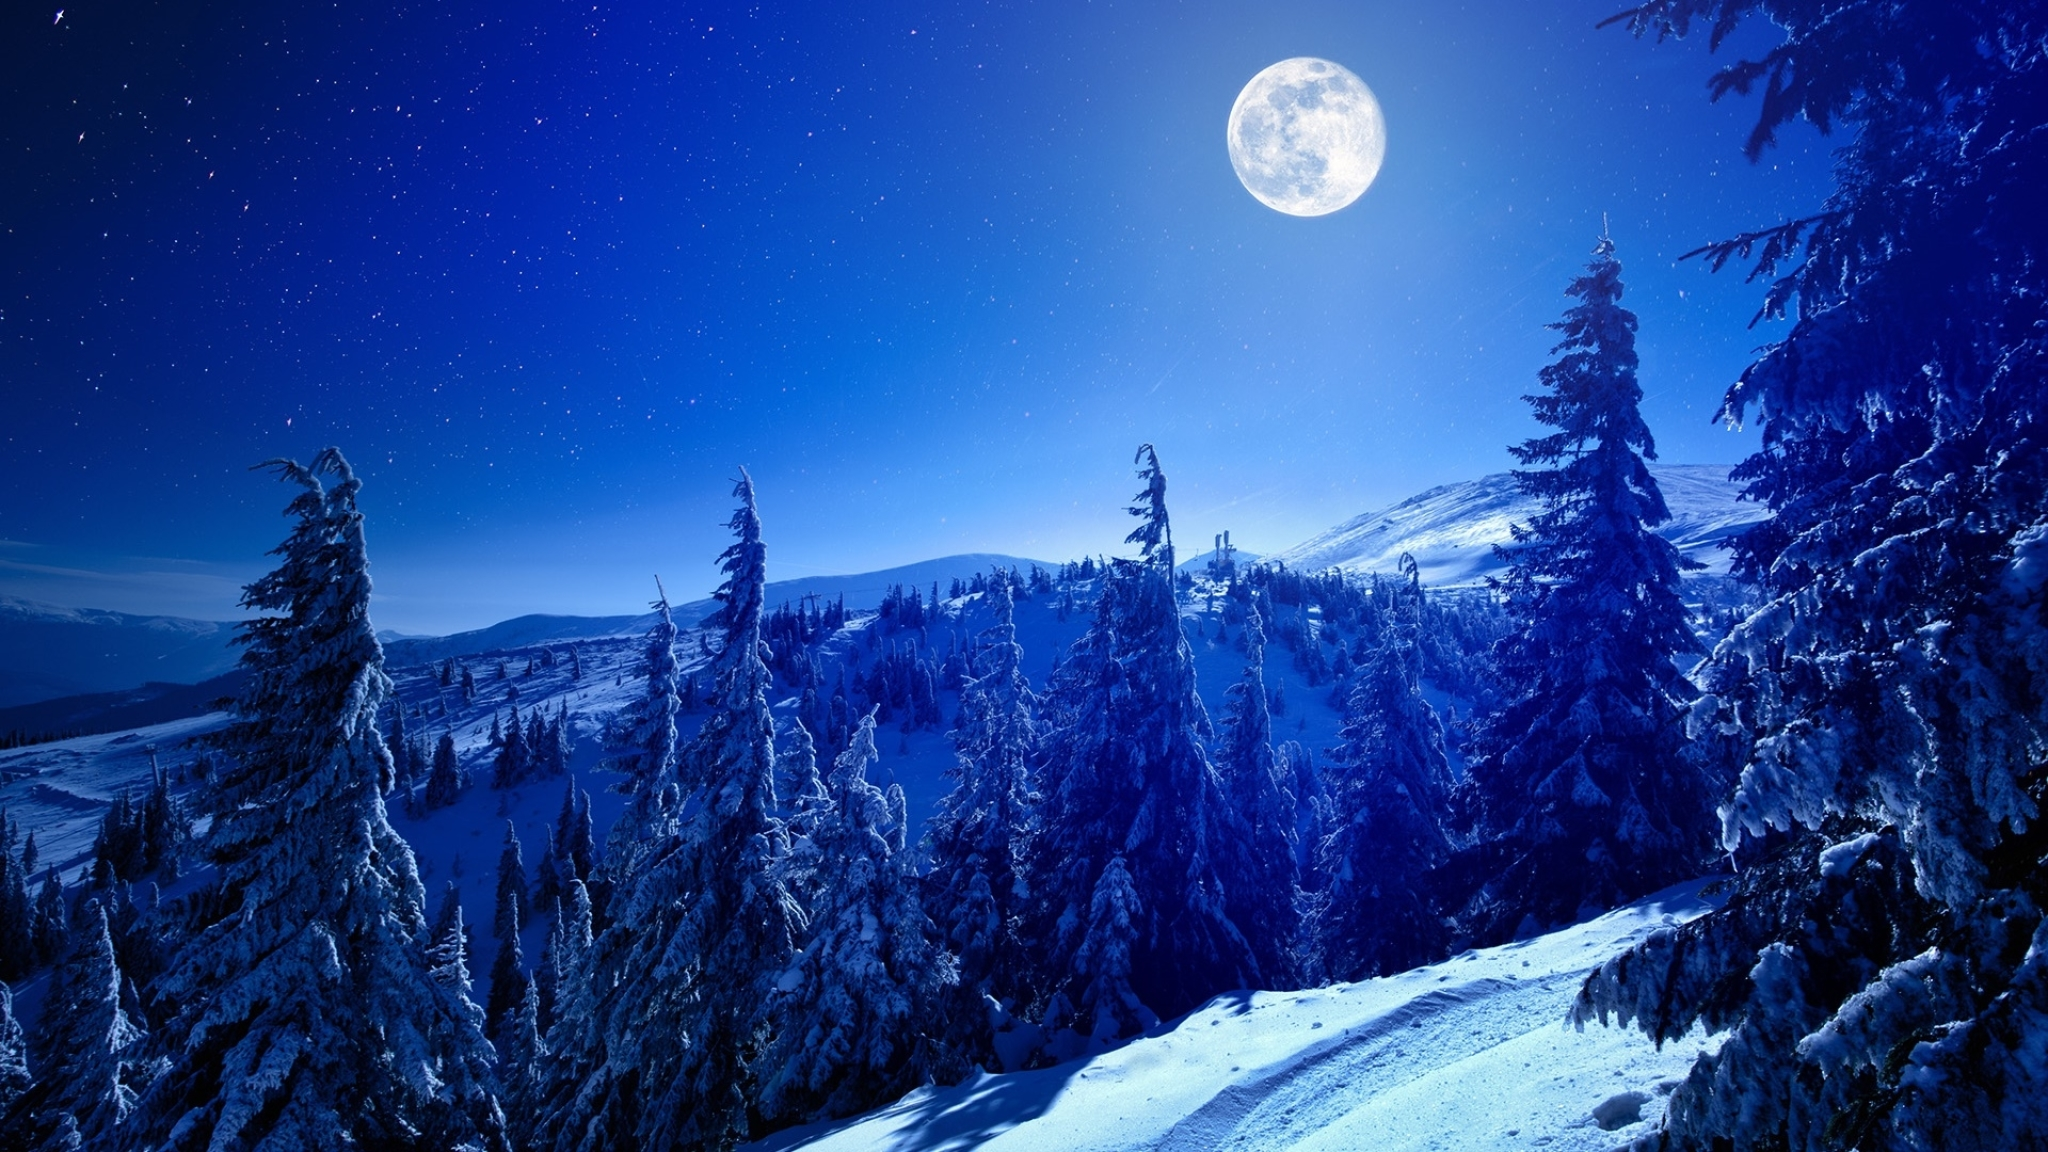 2048x1152 Full Moon Over Winter Forest 2048x1152 Resolution